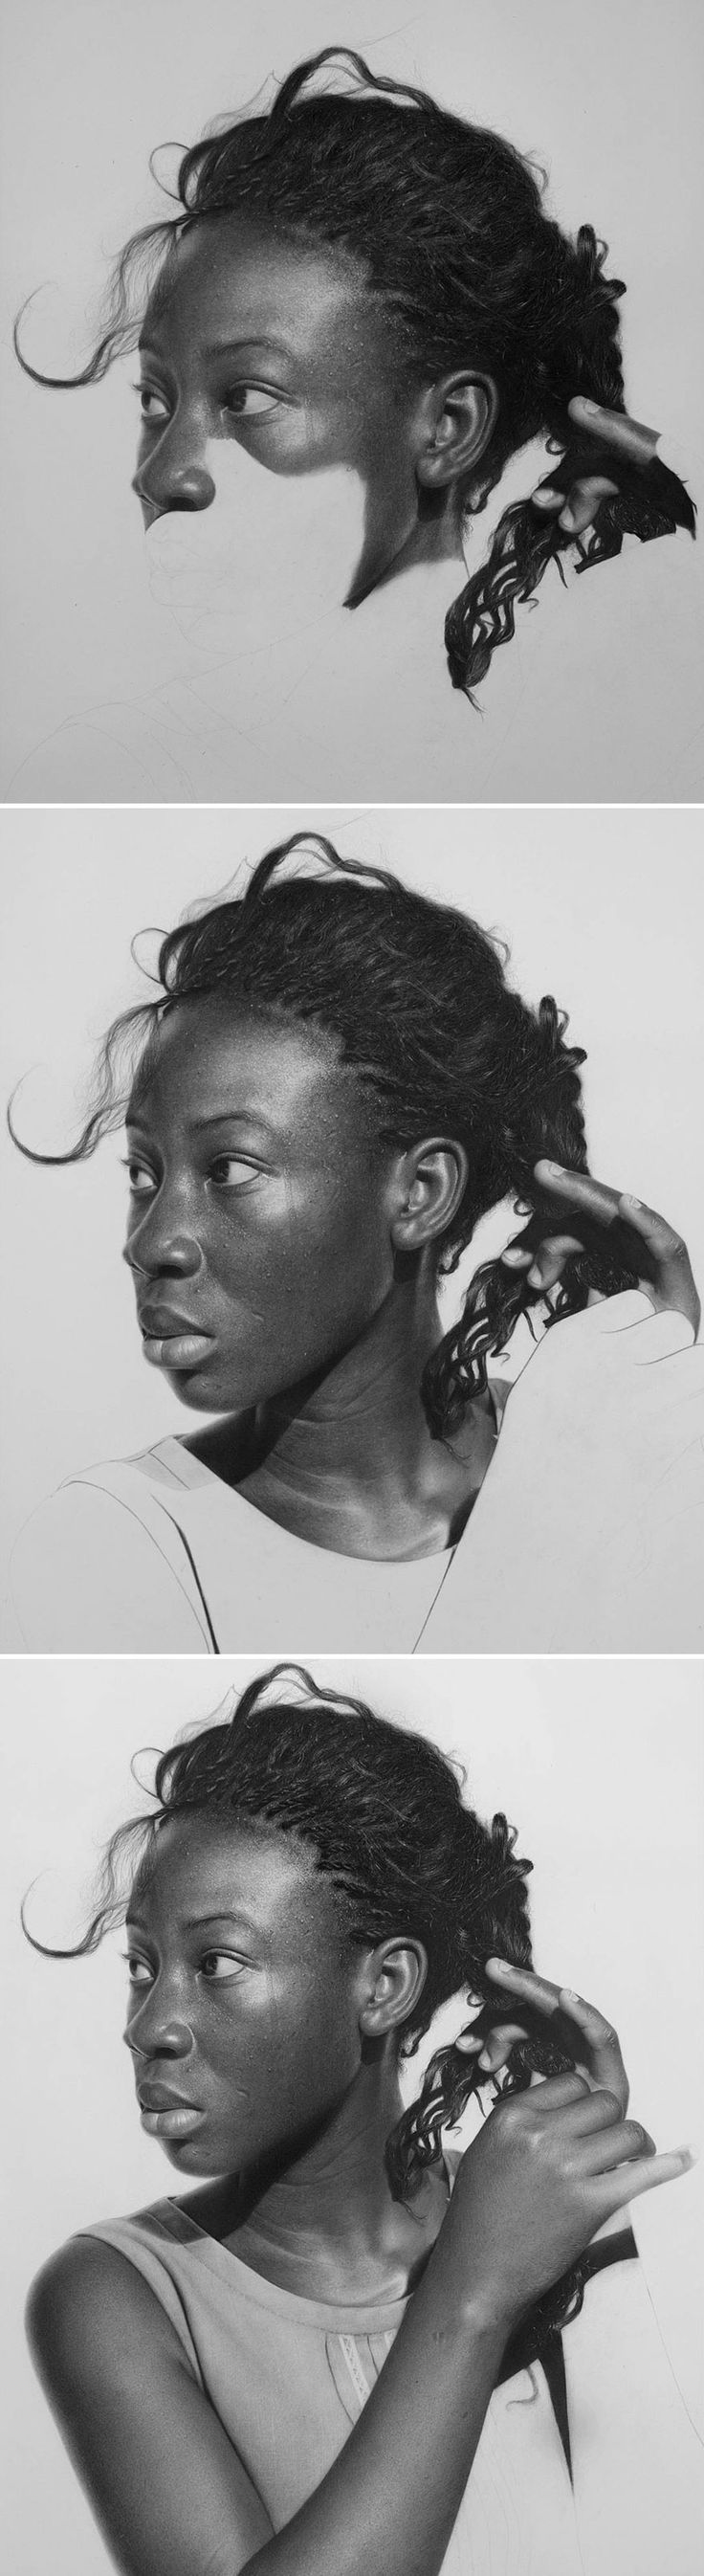 Drawn eiland realistic By Portraits Pencil best on